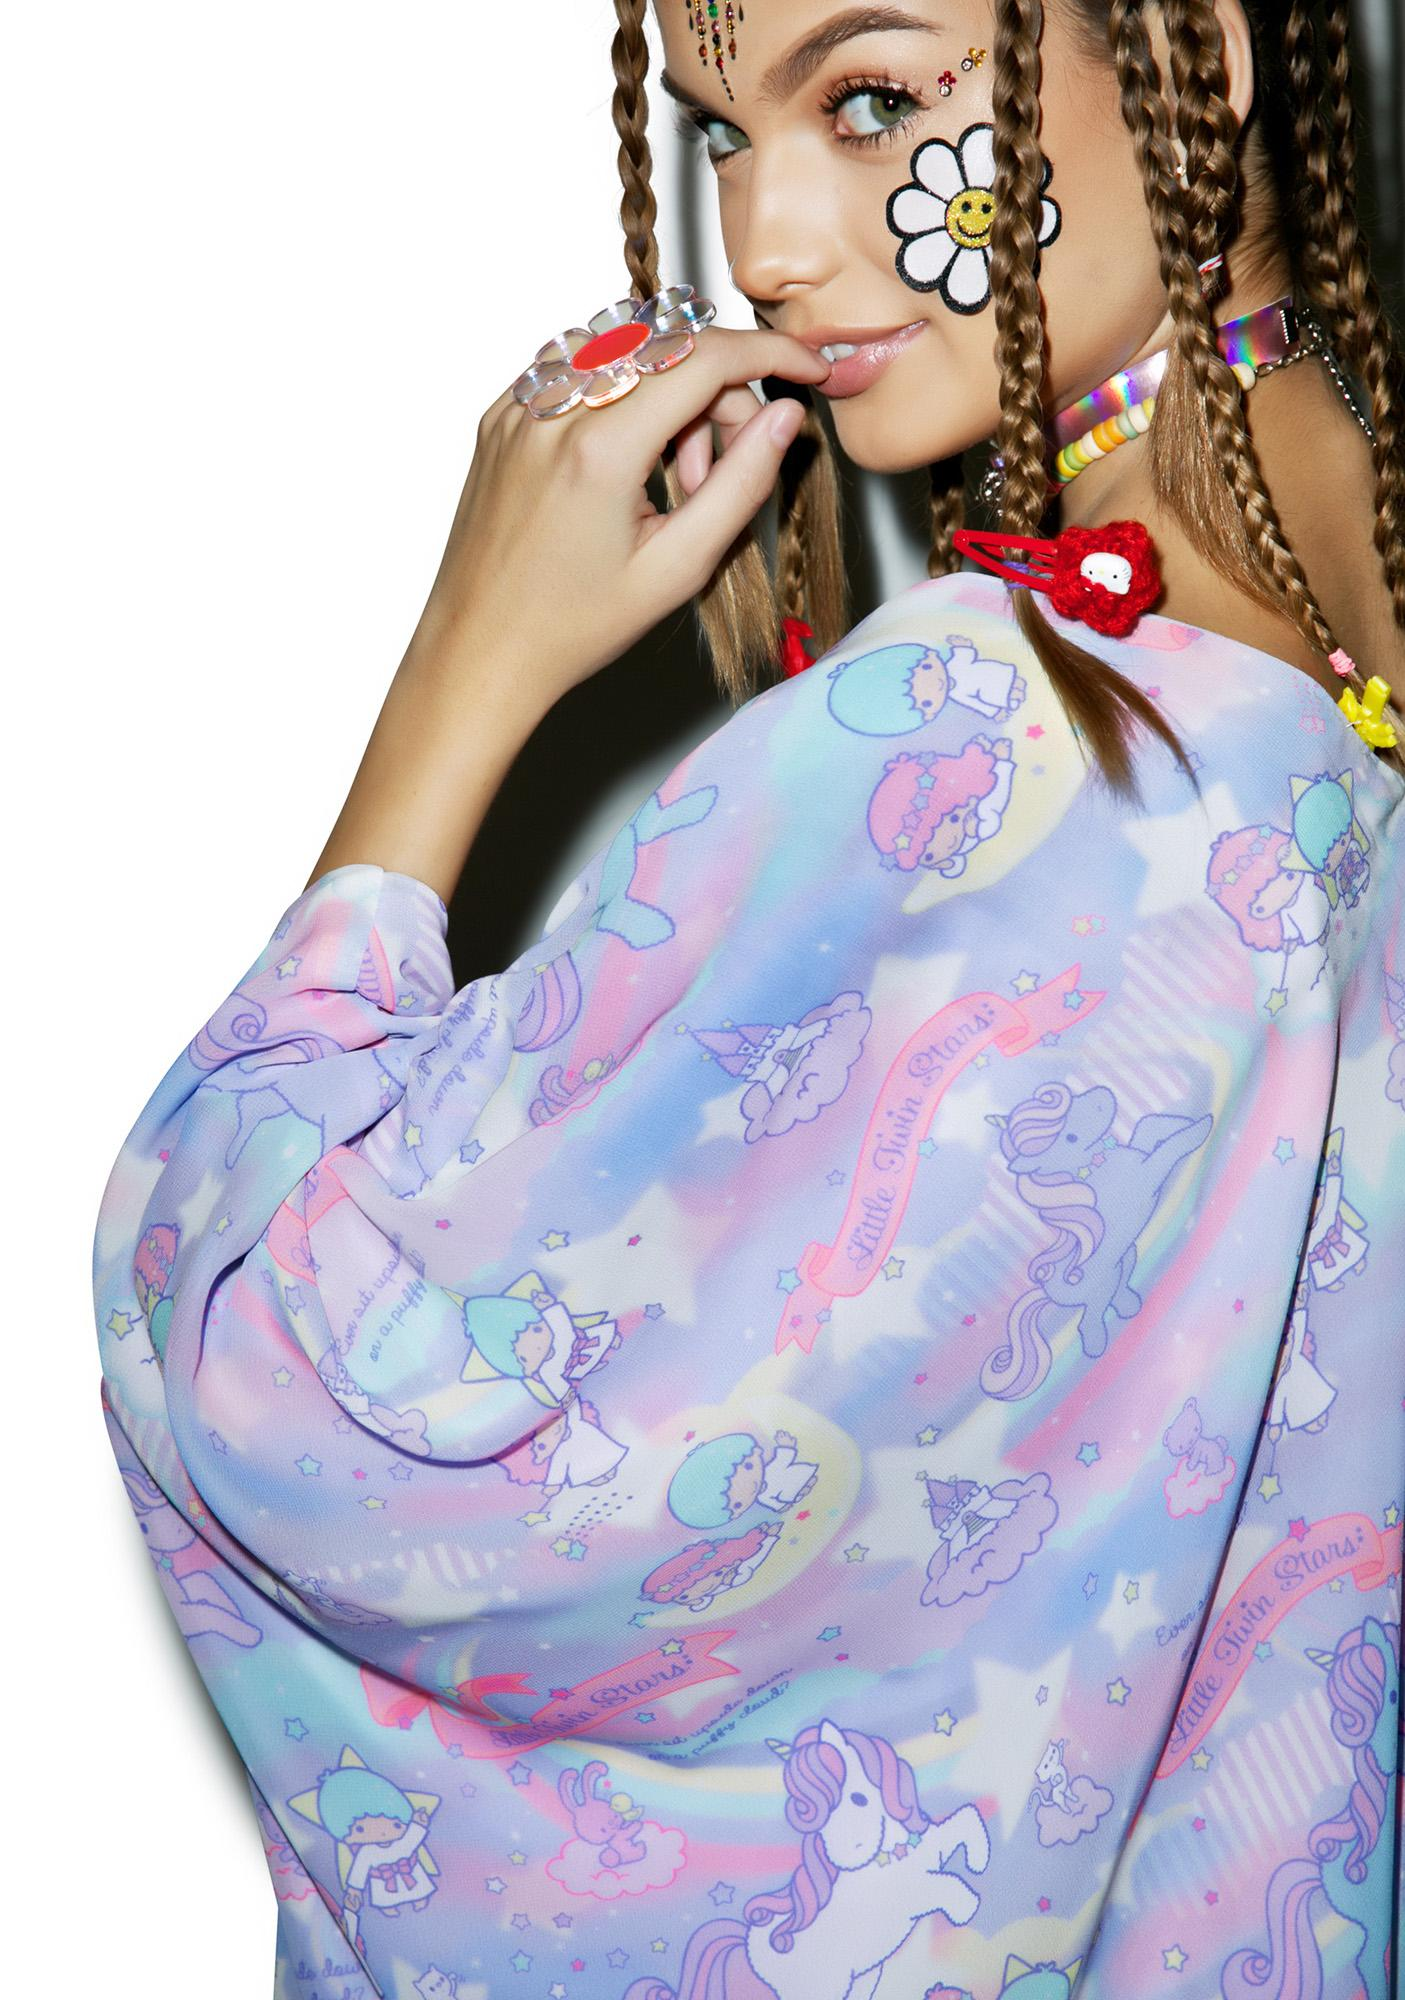 Japan L.A. Little Twin Stars Dreamy Unicorn Kimono